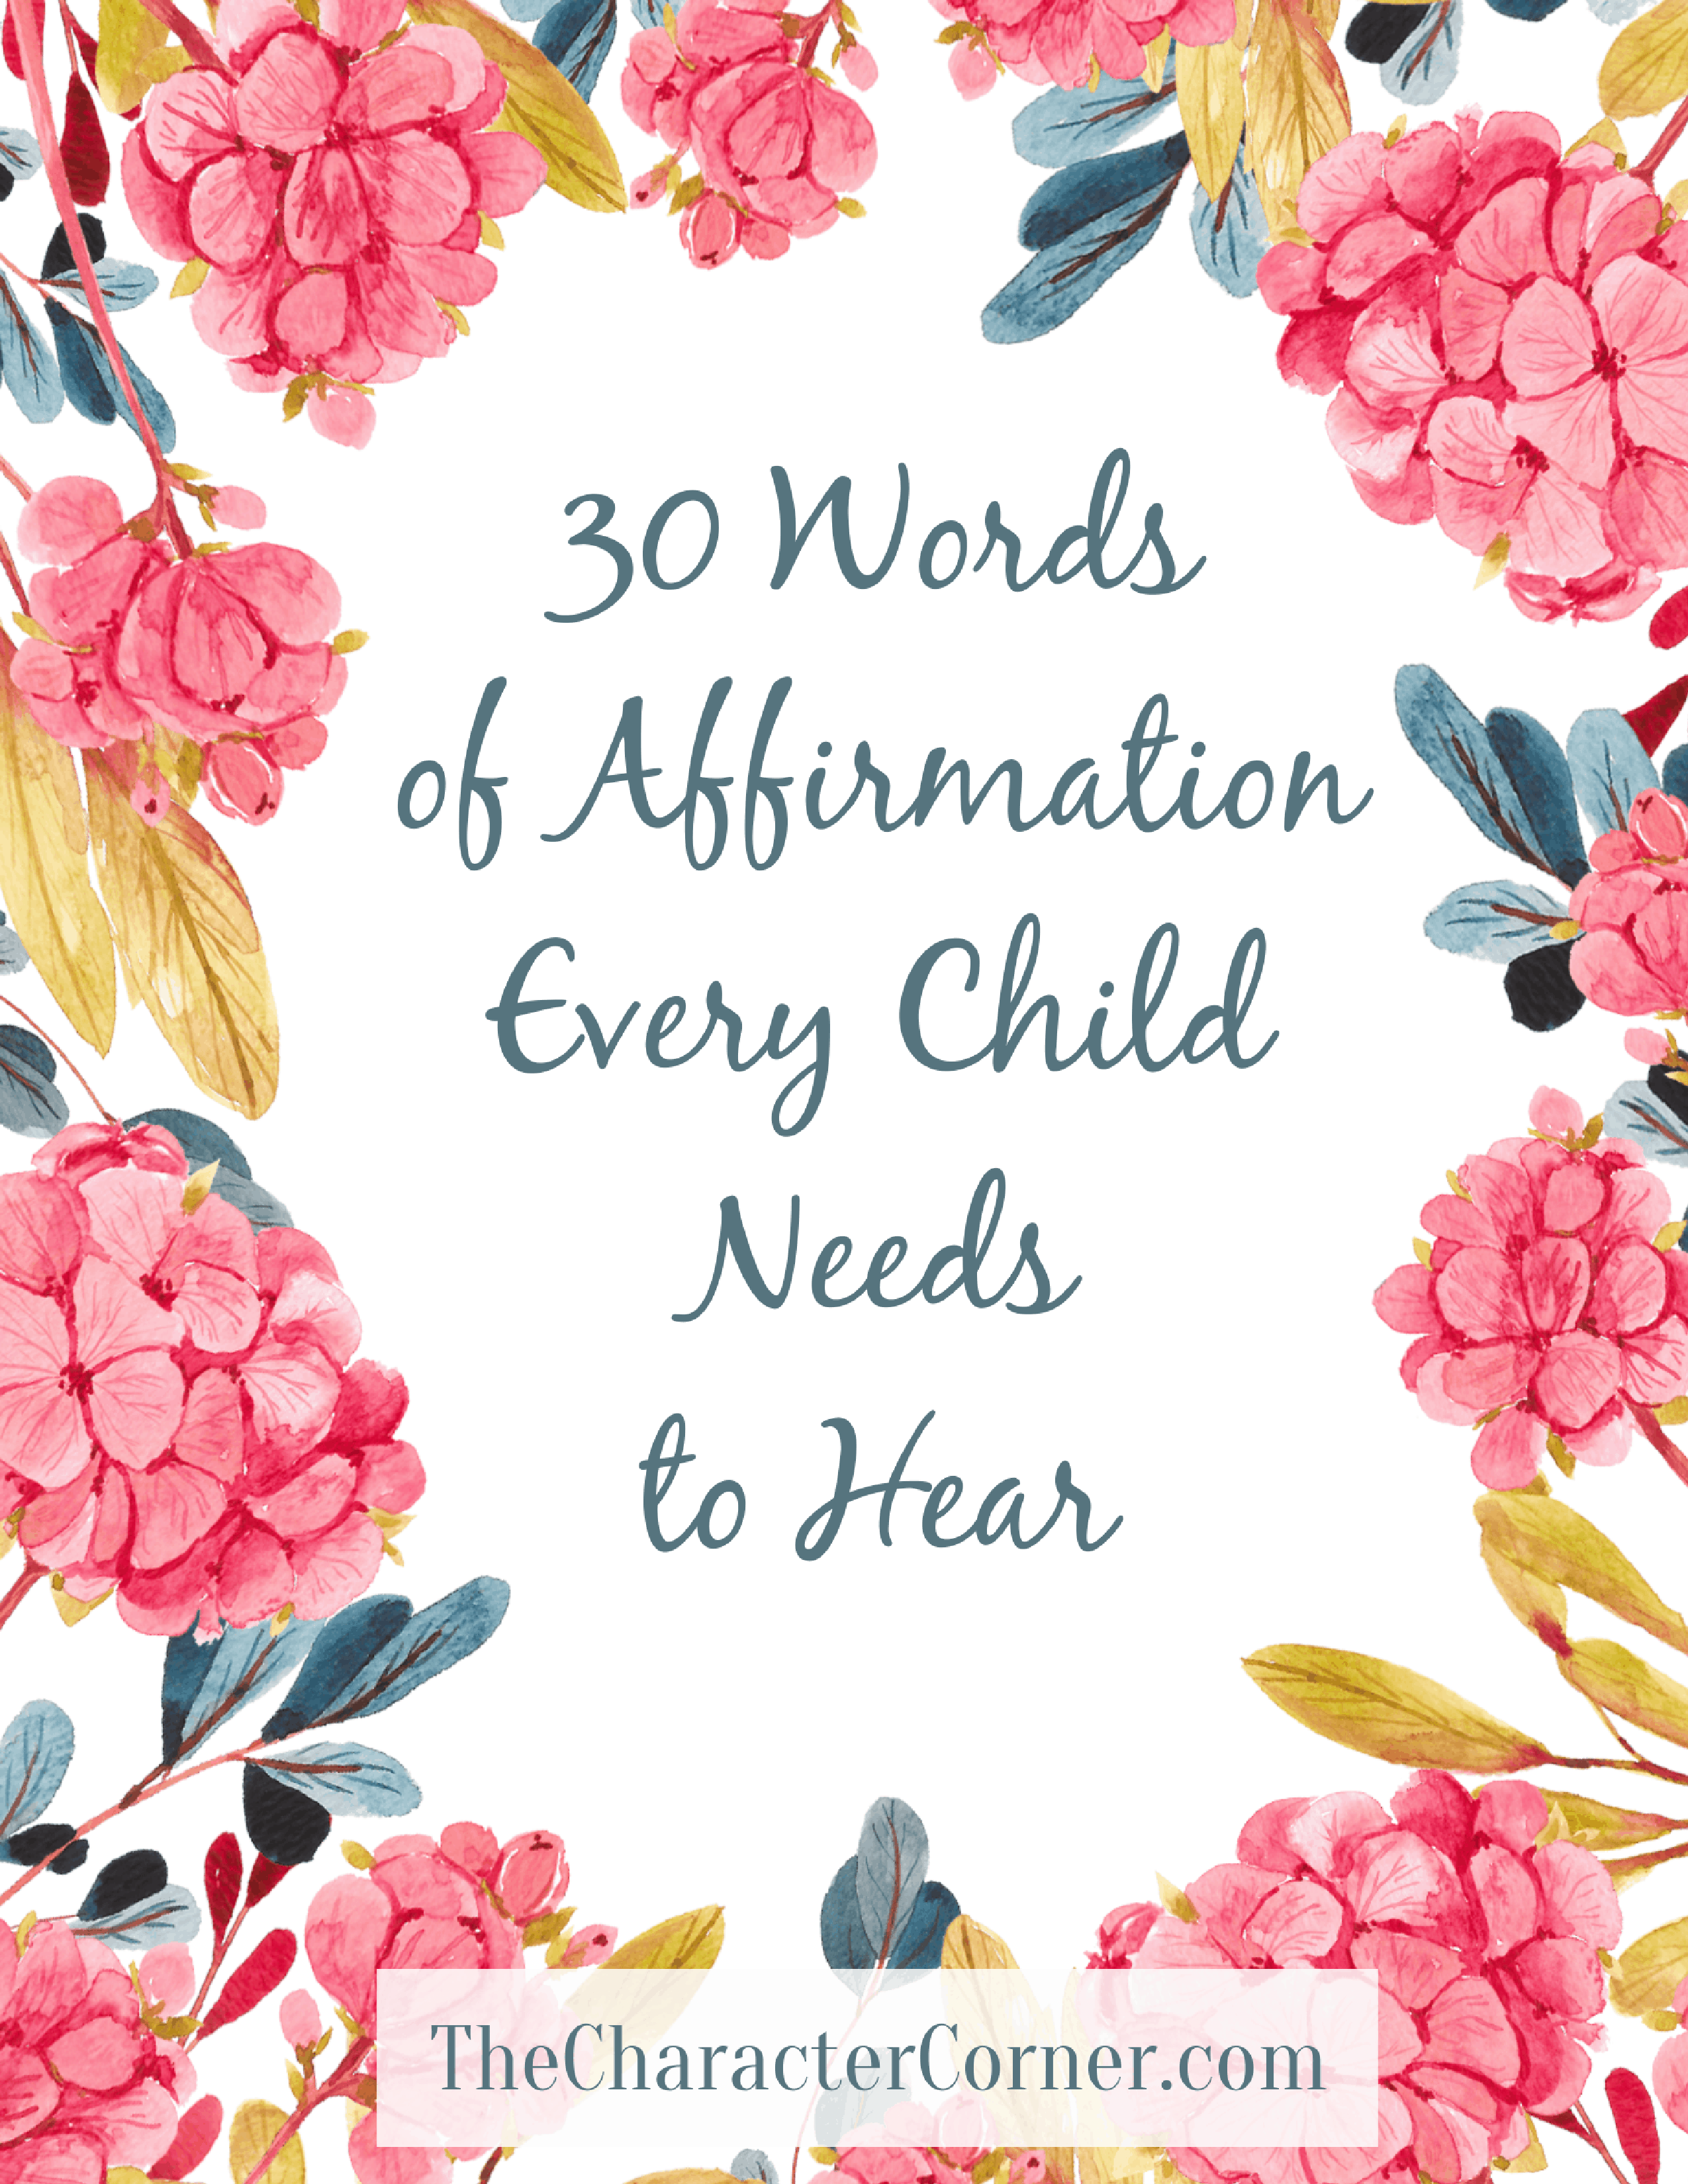 Words of affirmation our children need